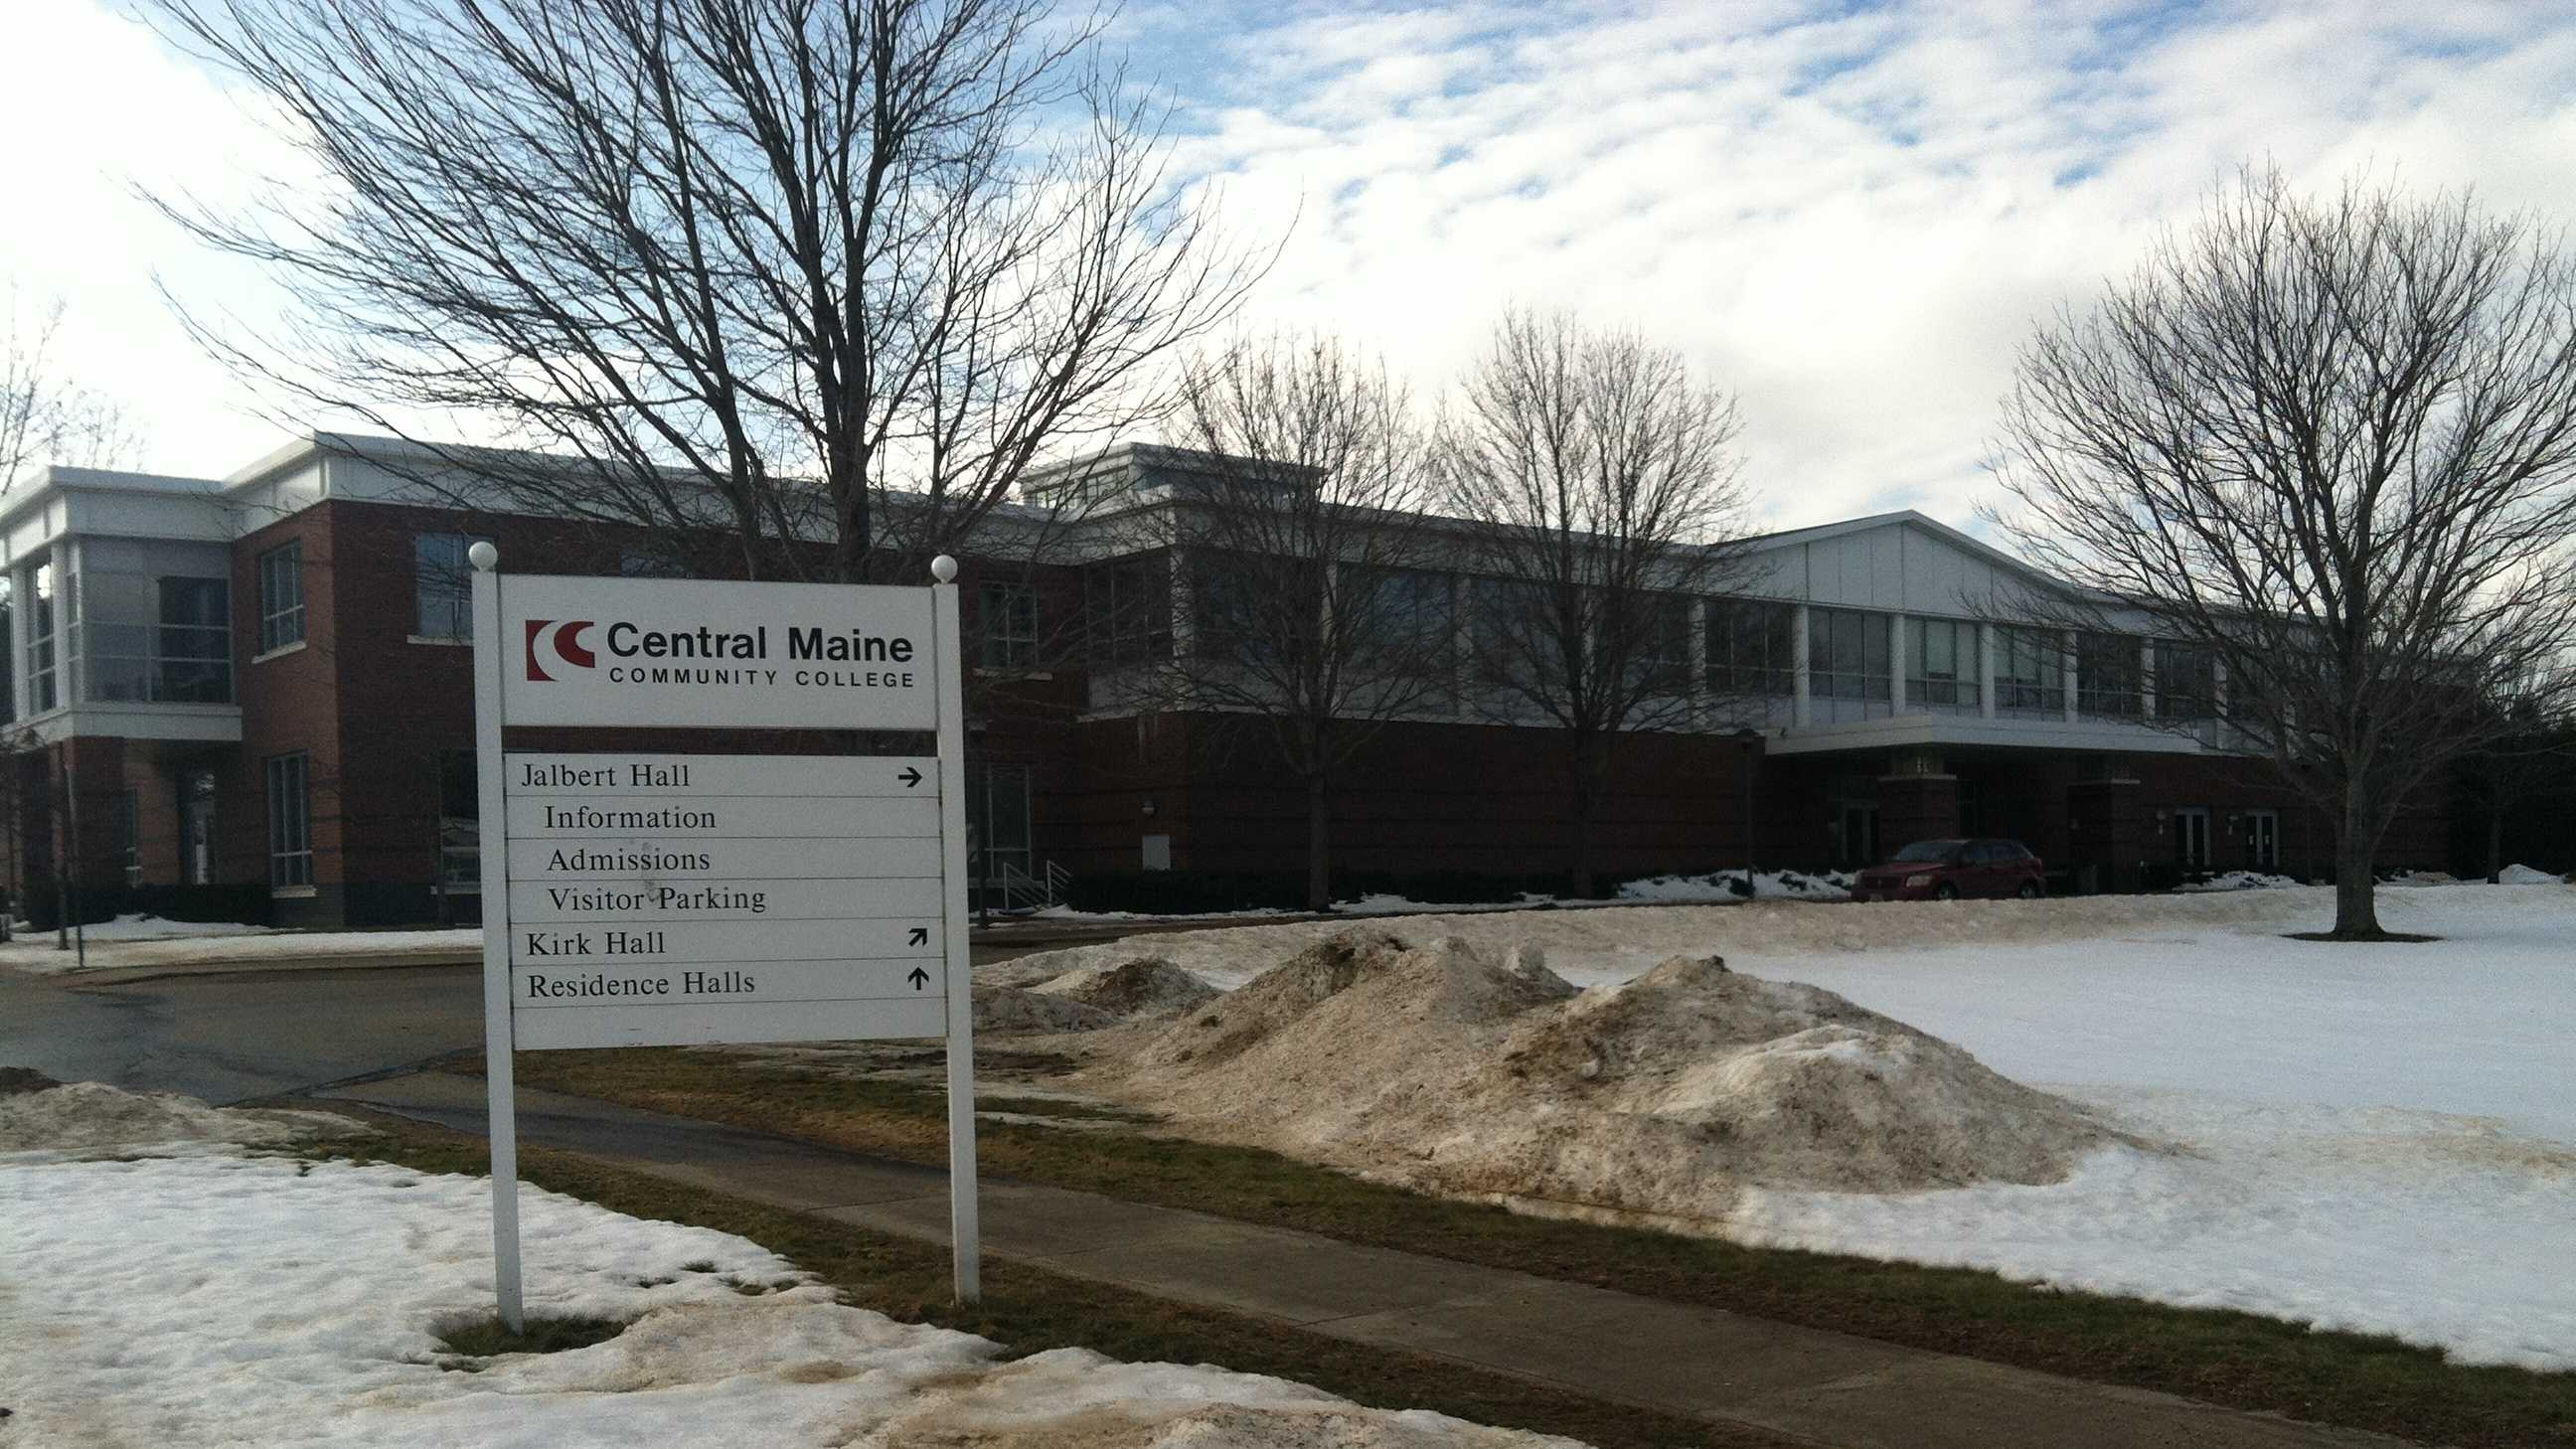 Central Maine Community College